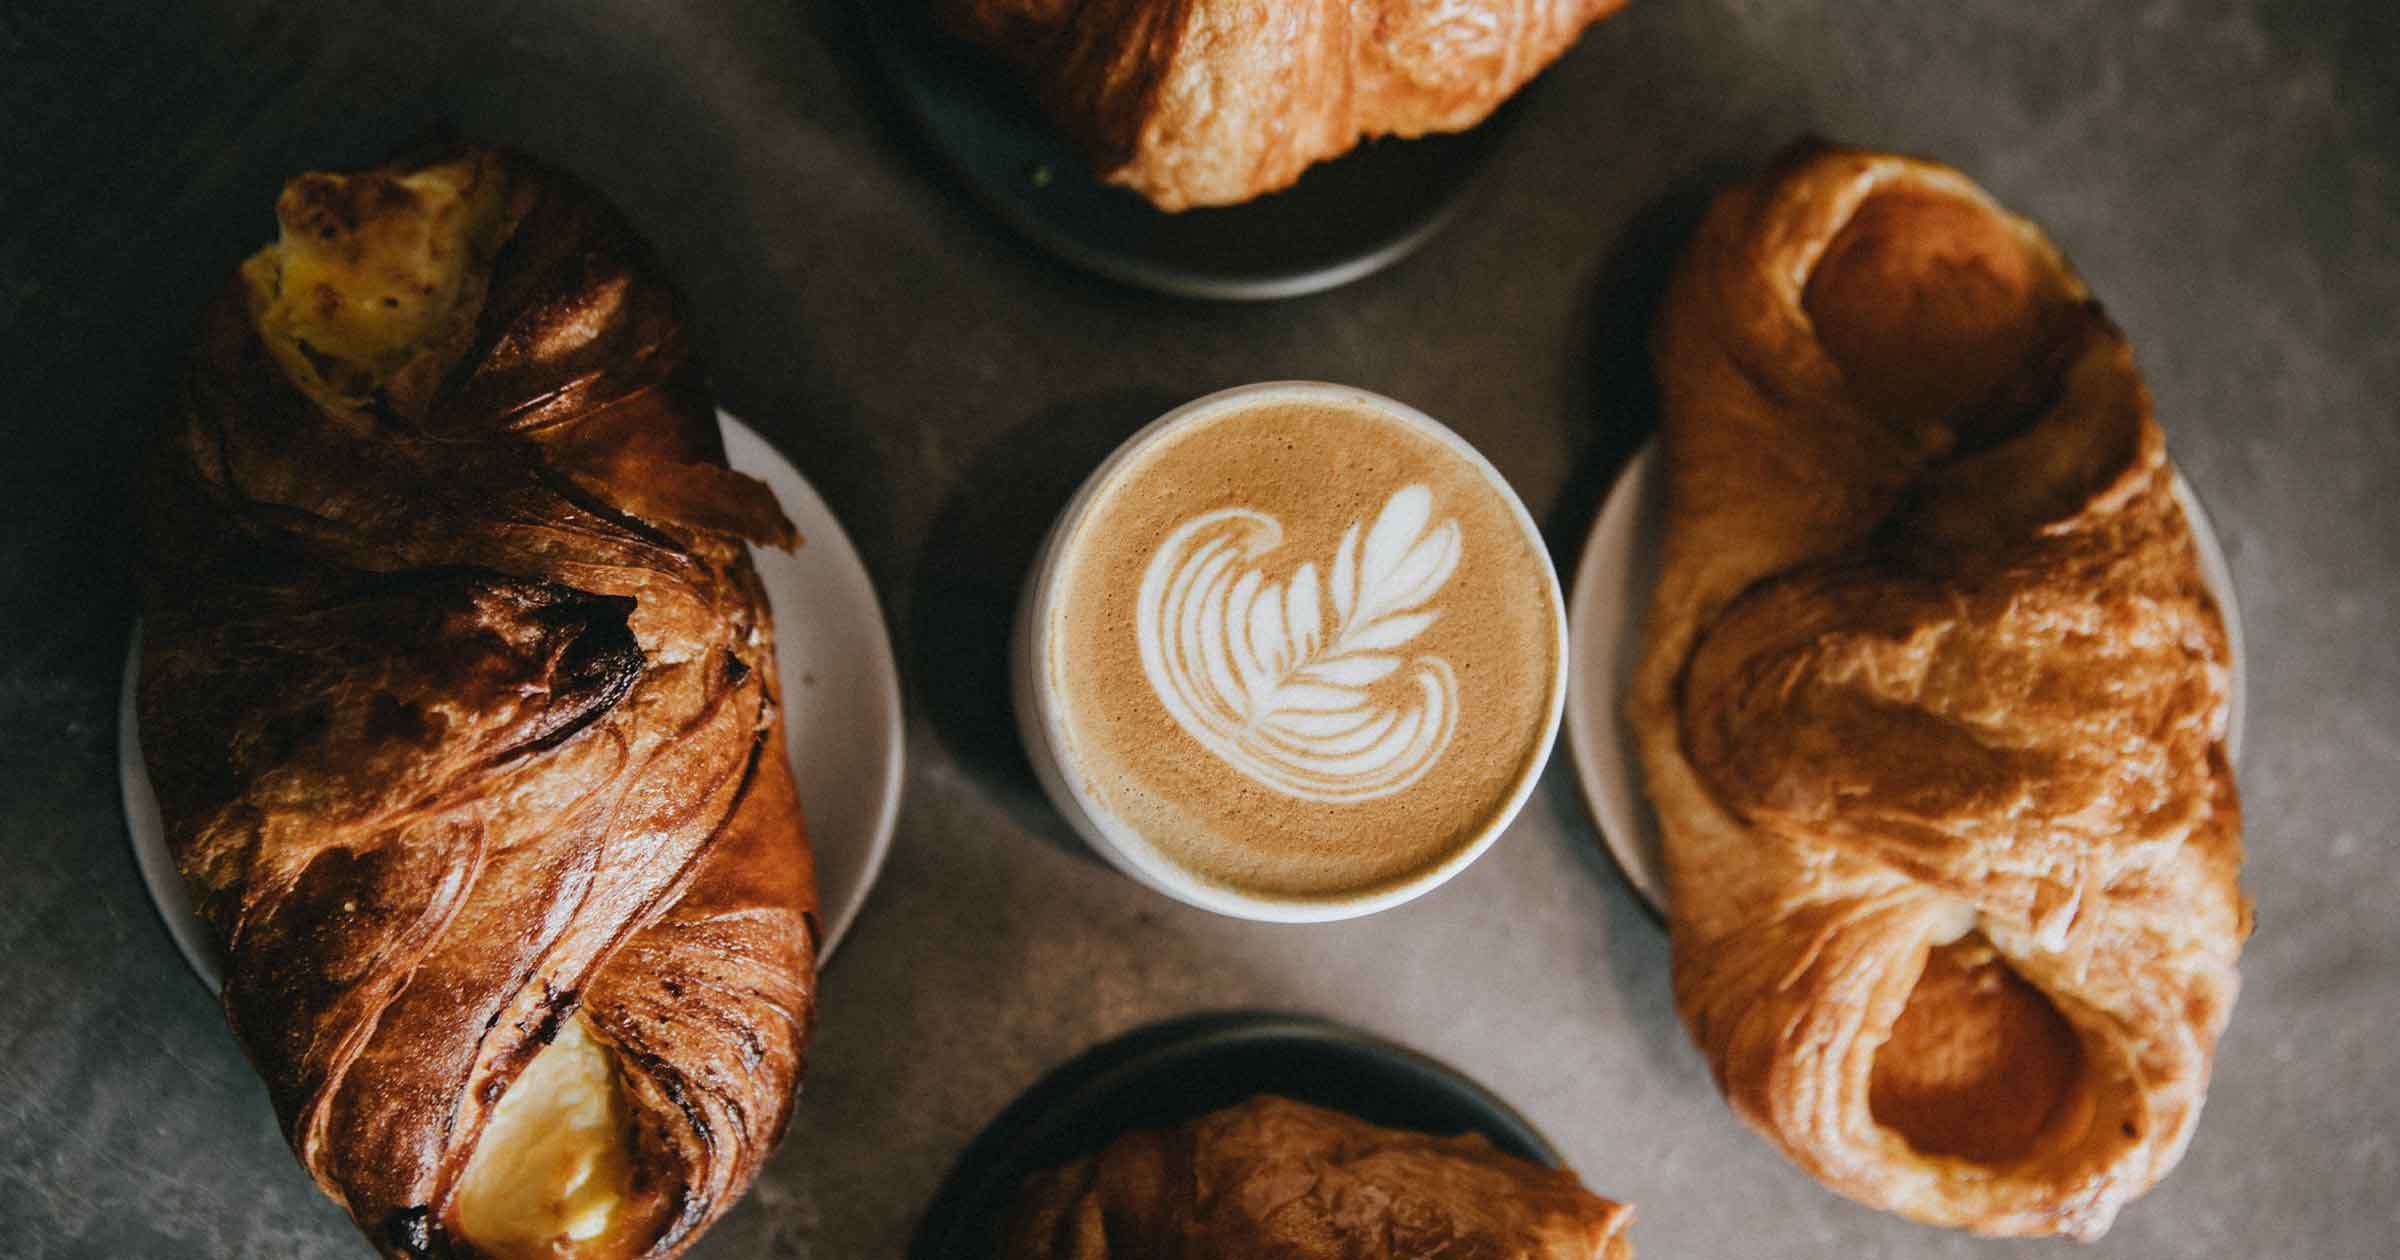 Homemade Croissant with Coffee